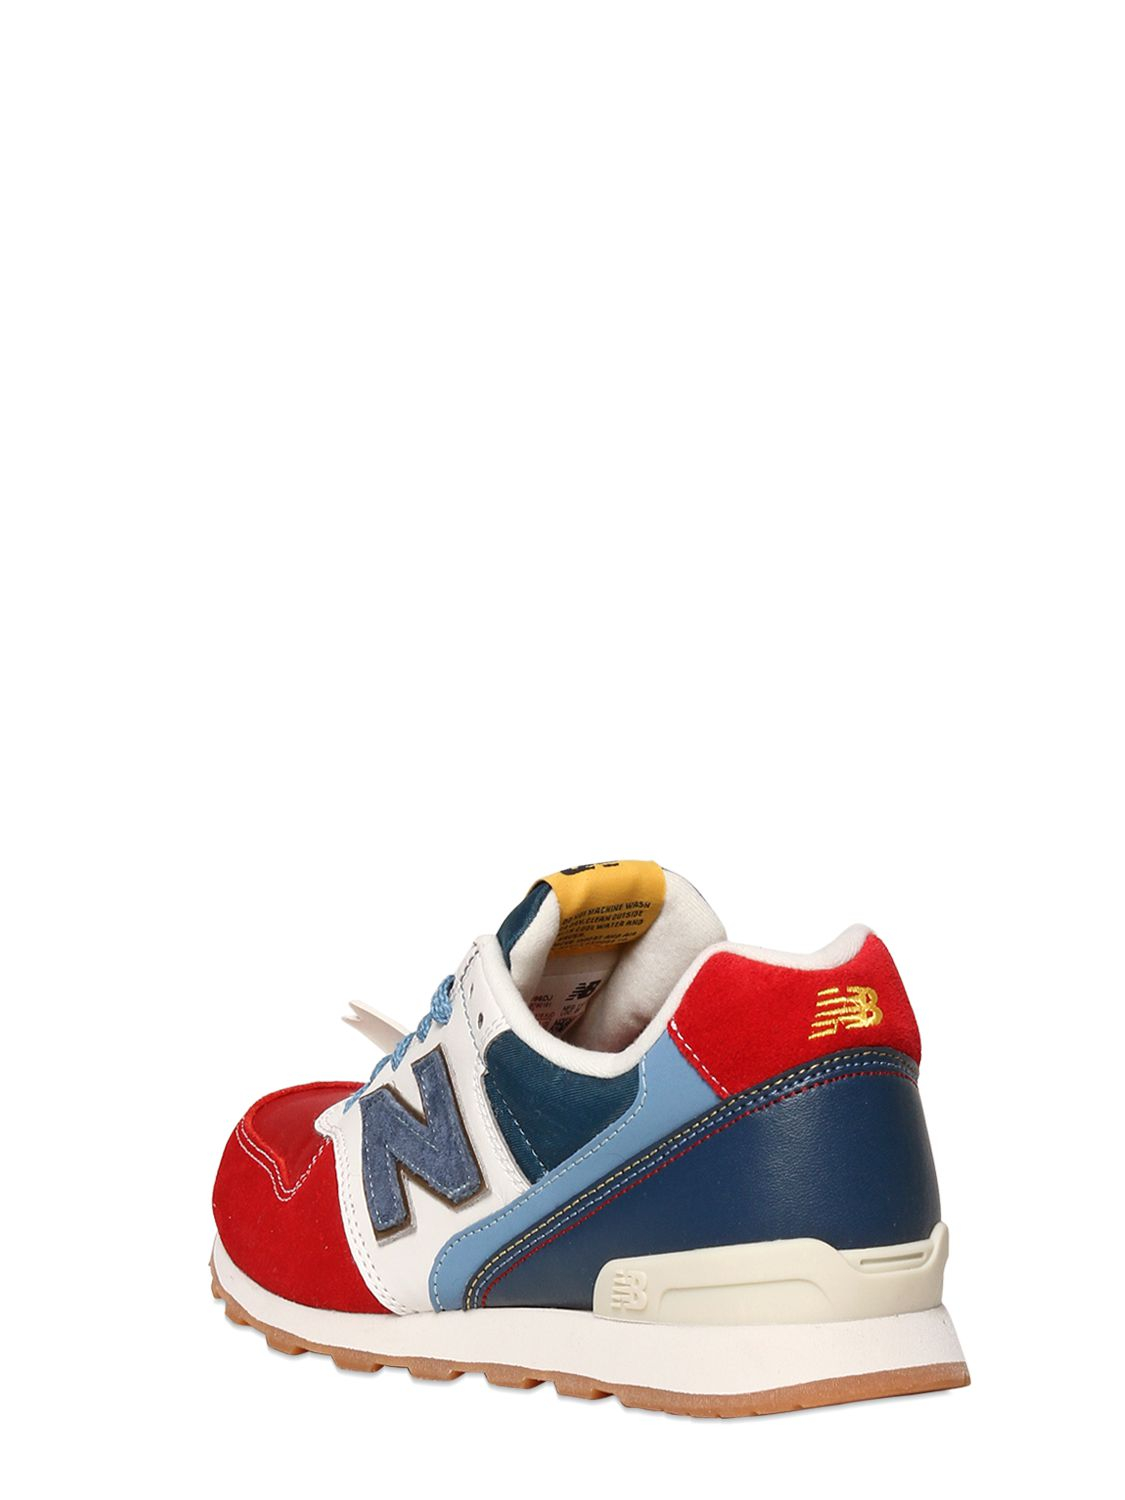 996 Suede and Nylon Sneakers New Balance